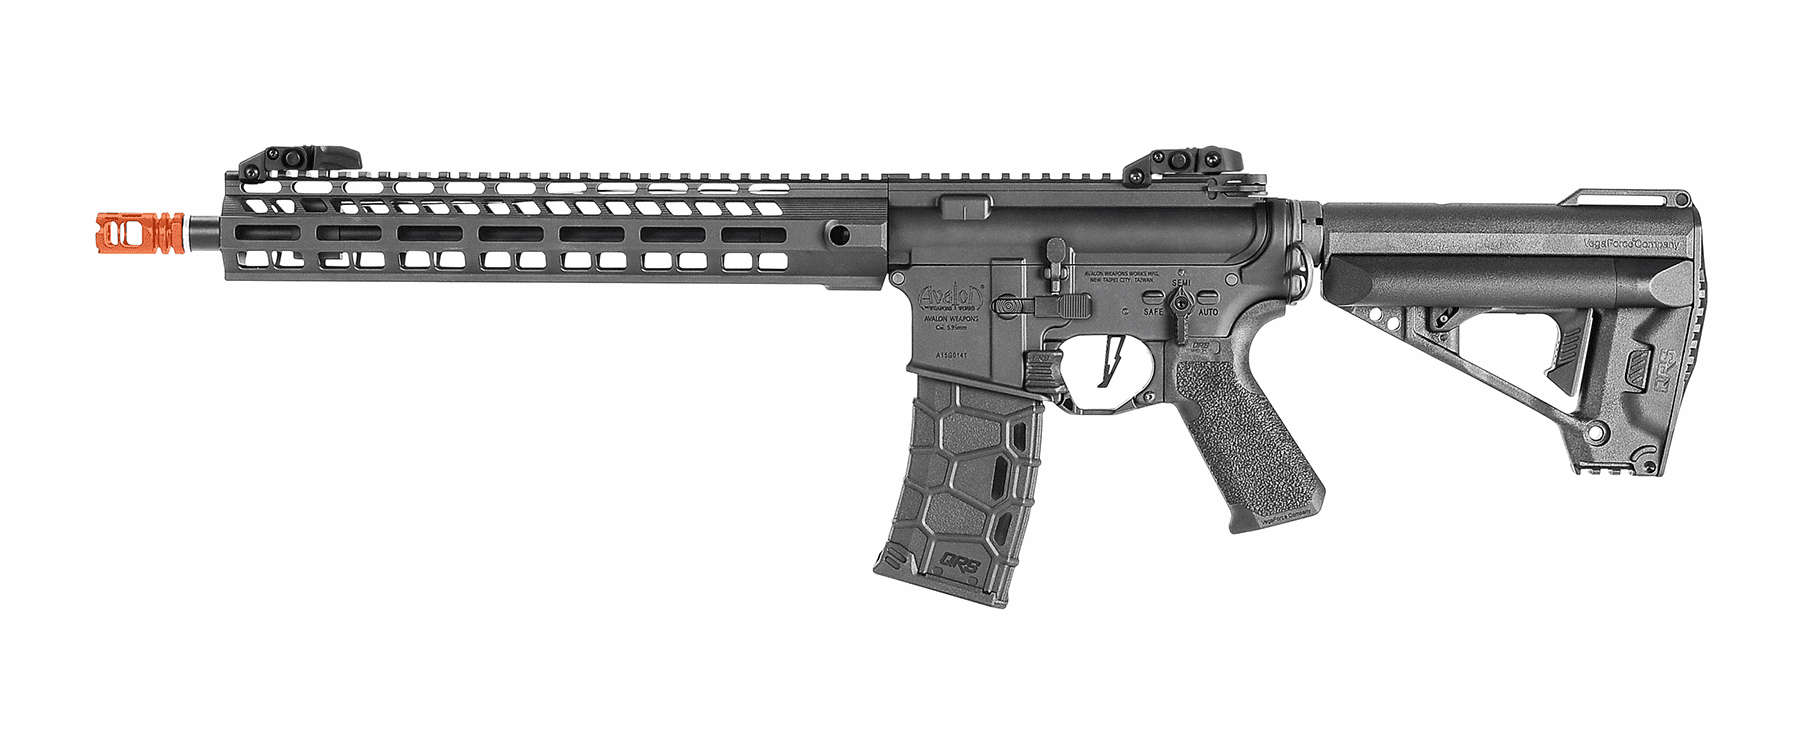 VFC Avalon Full Metal VR16 Saber Carbine